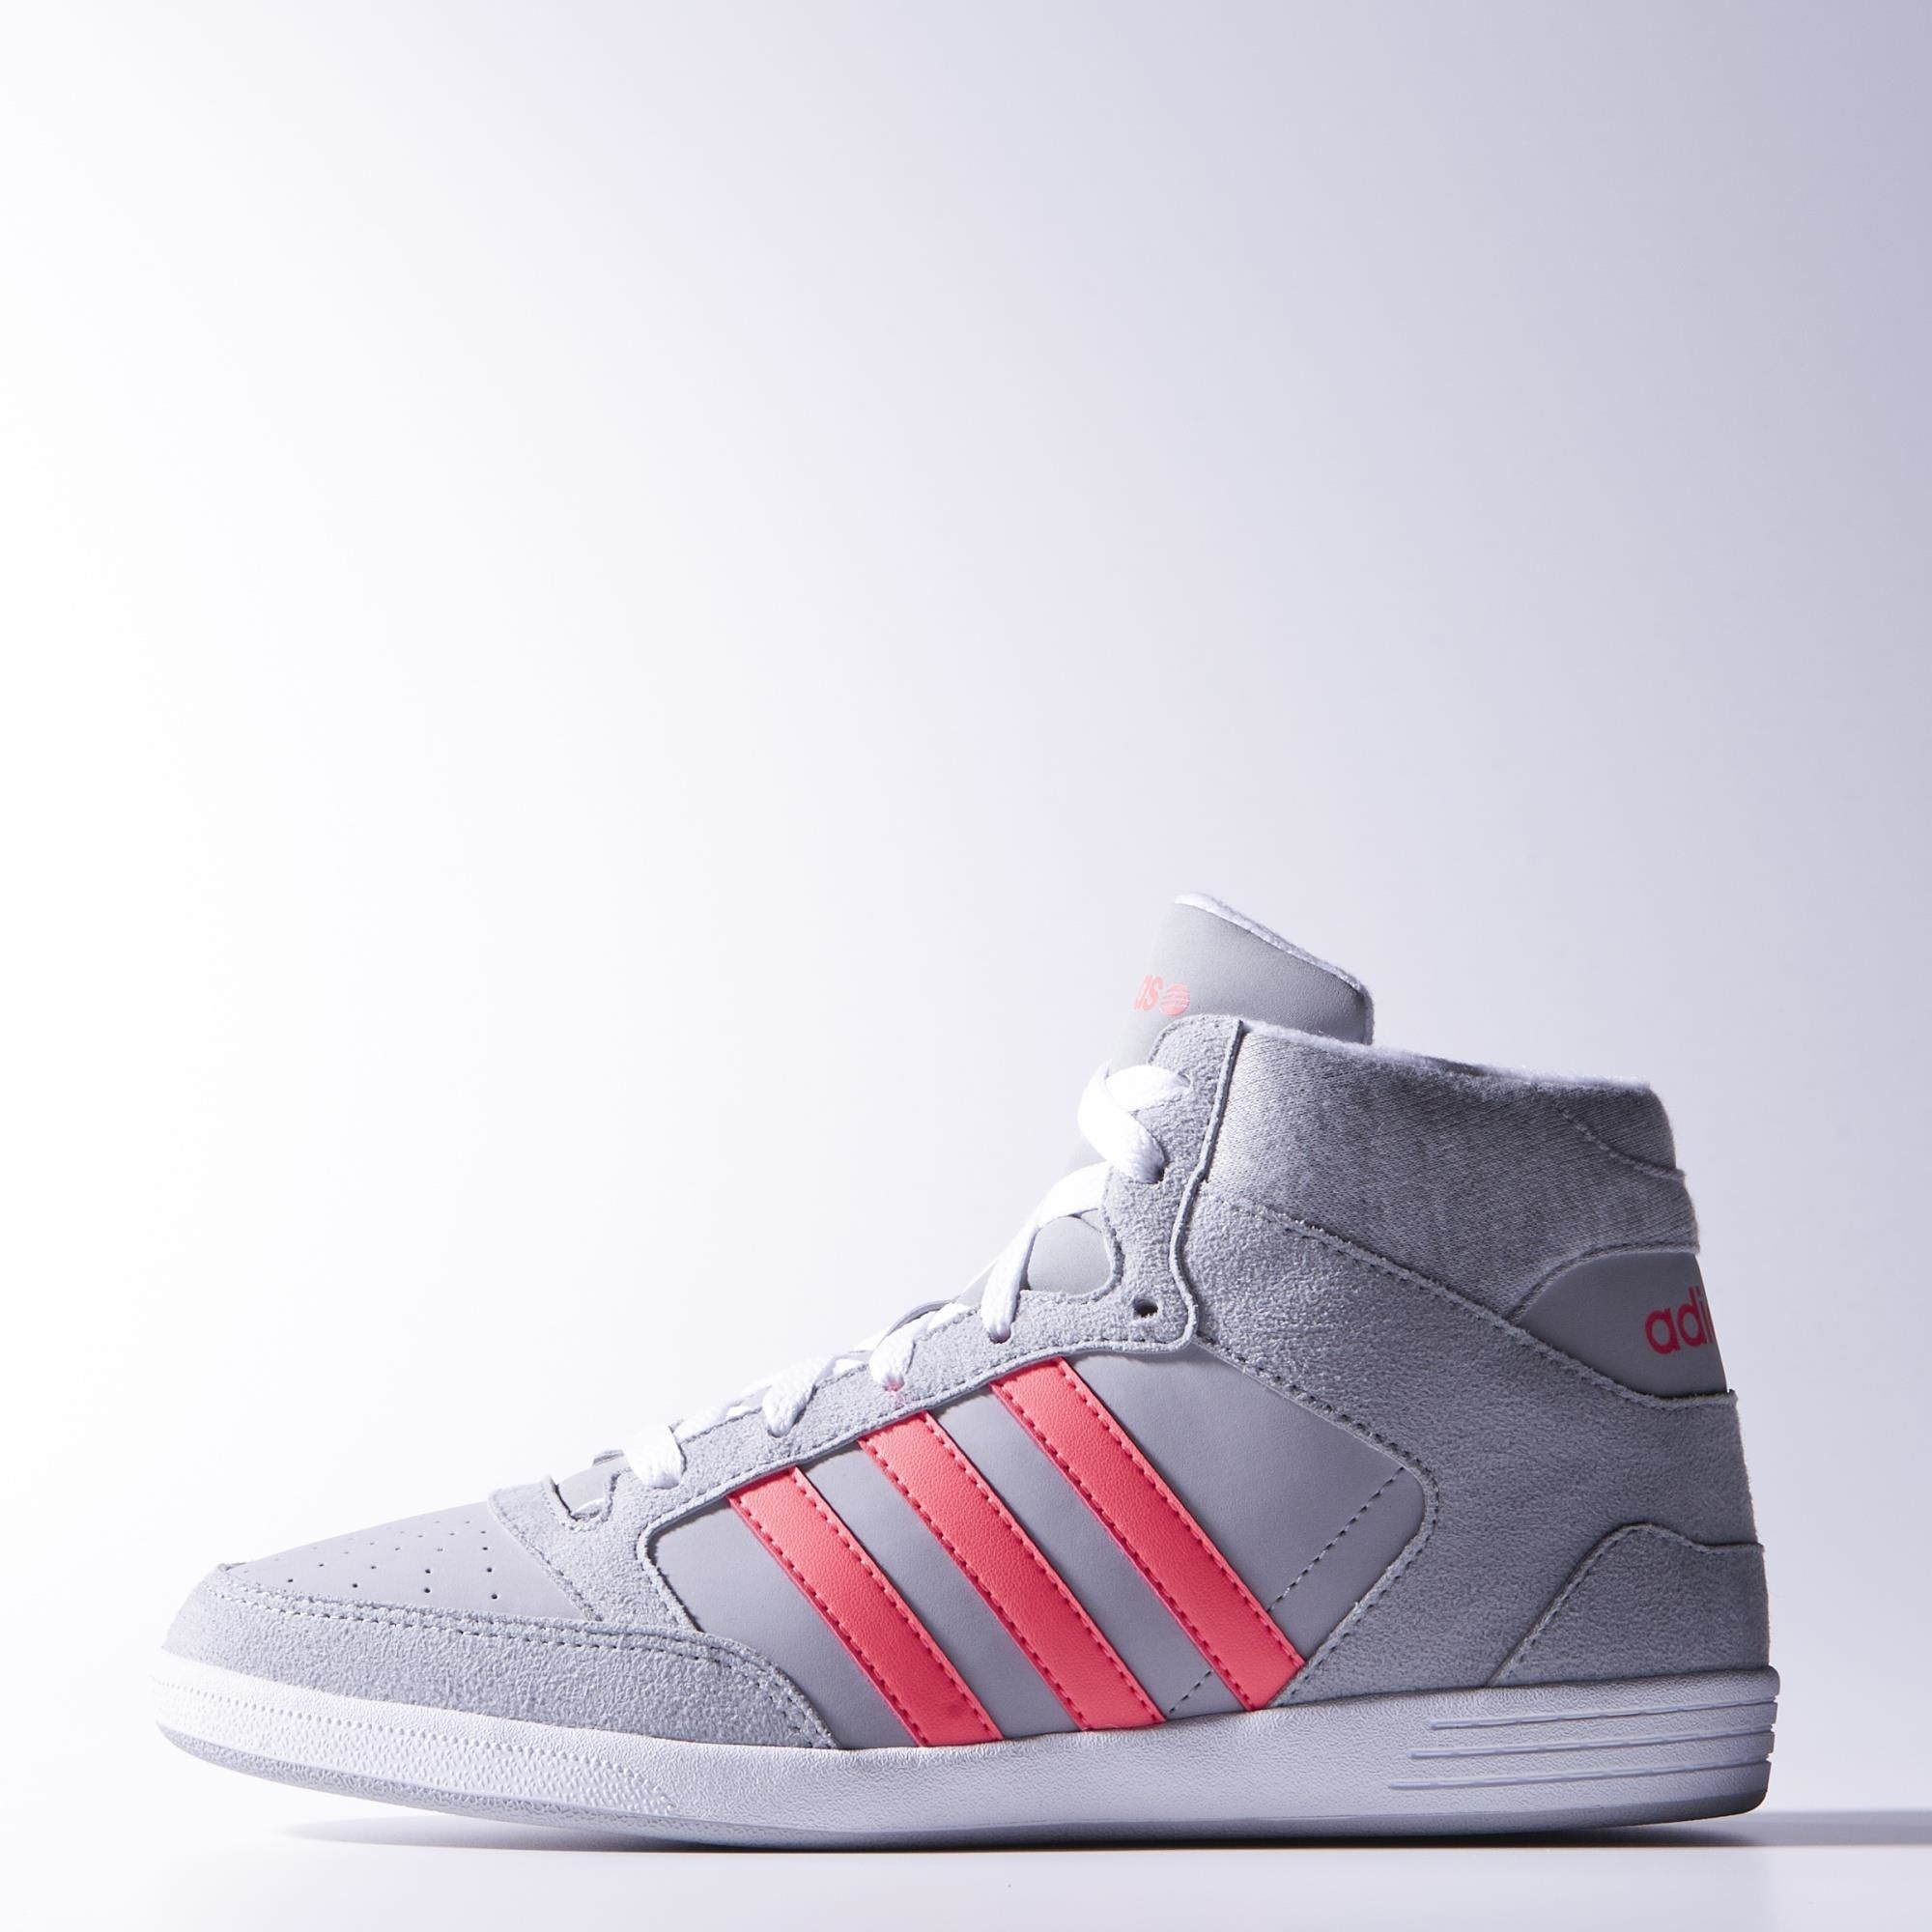 new product 6d01f d03a4 adidas Zapatillas VLNEO Hoops Caña Media Mujer   adidas Colombia